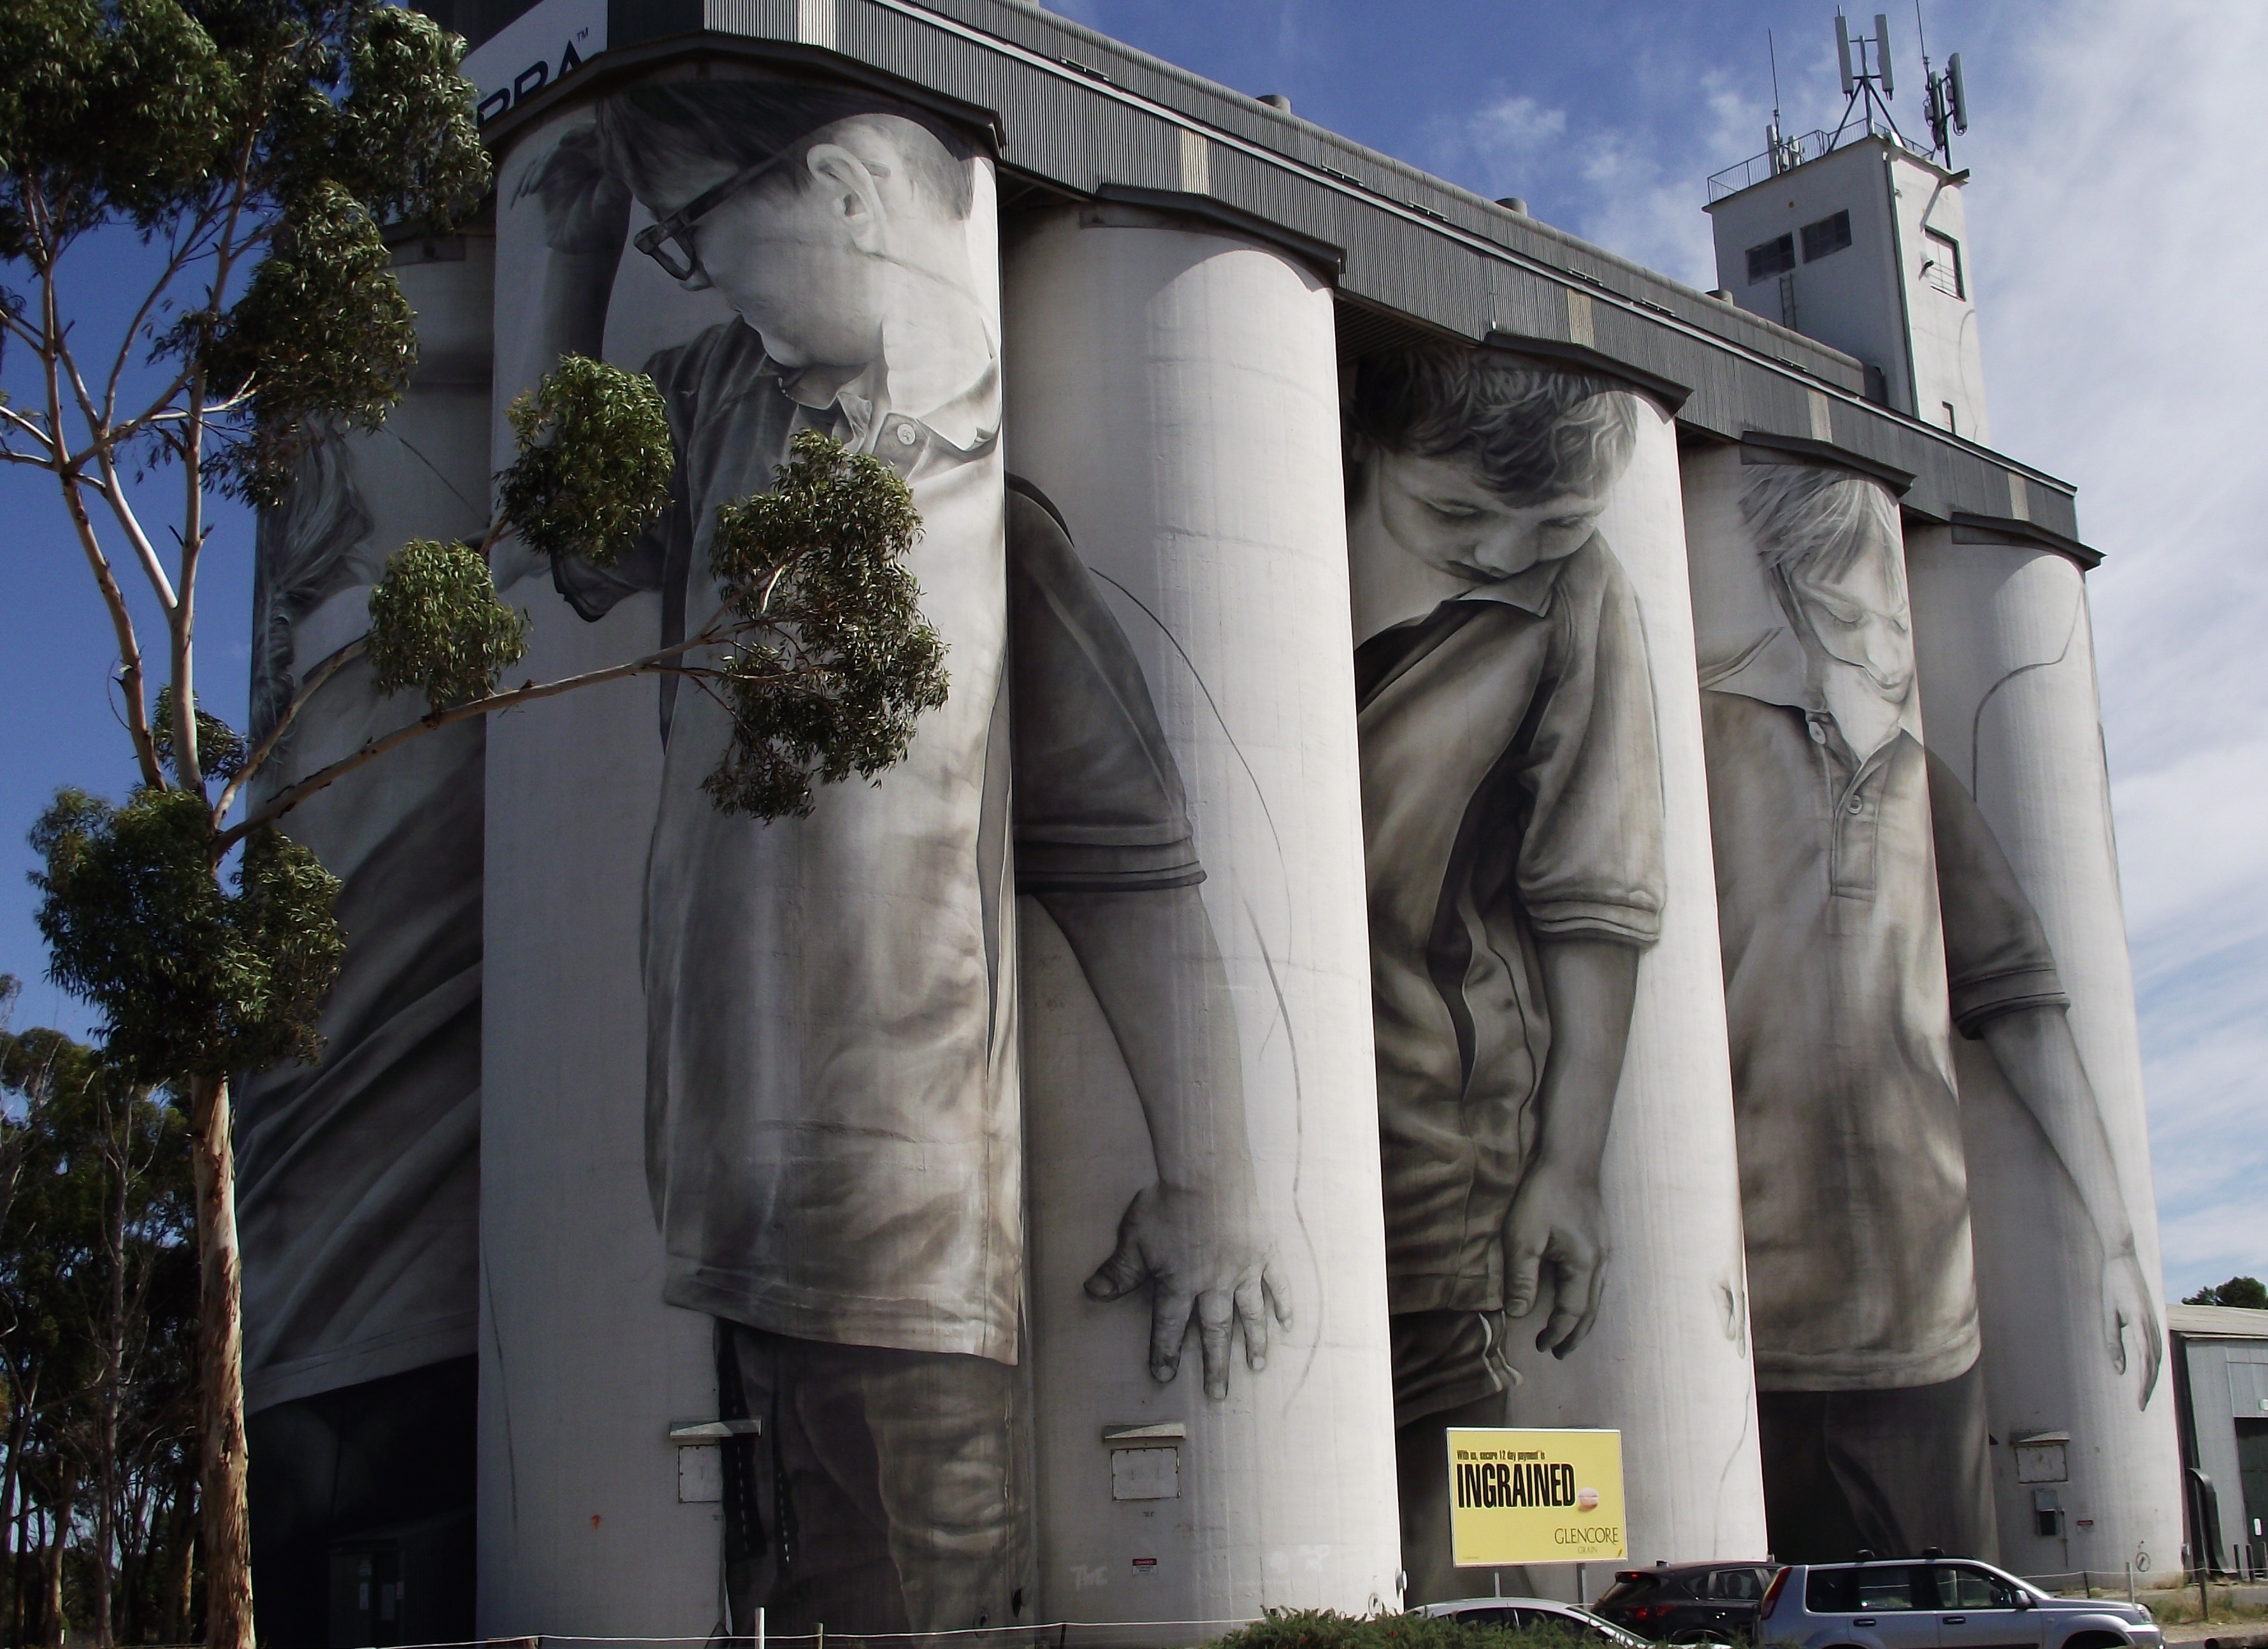 grain silo murals put coonalpyn on the arts map